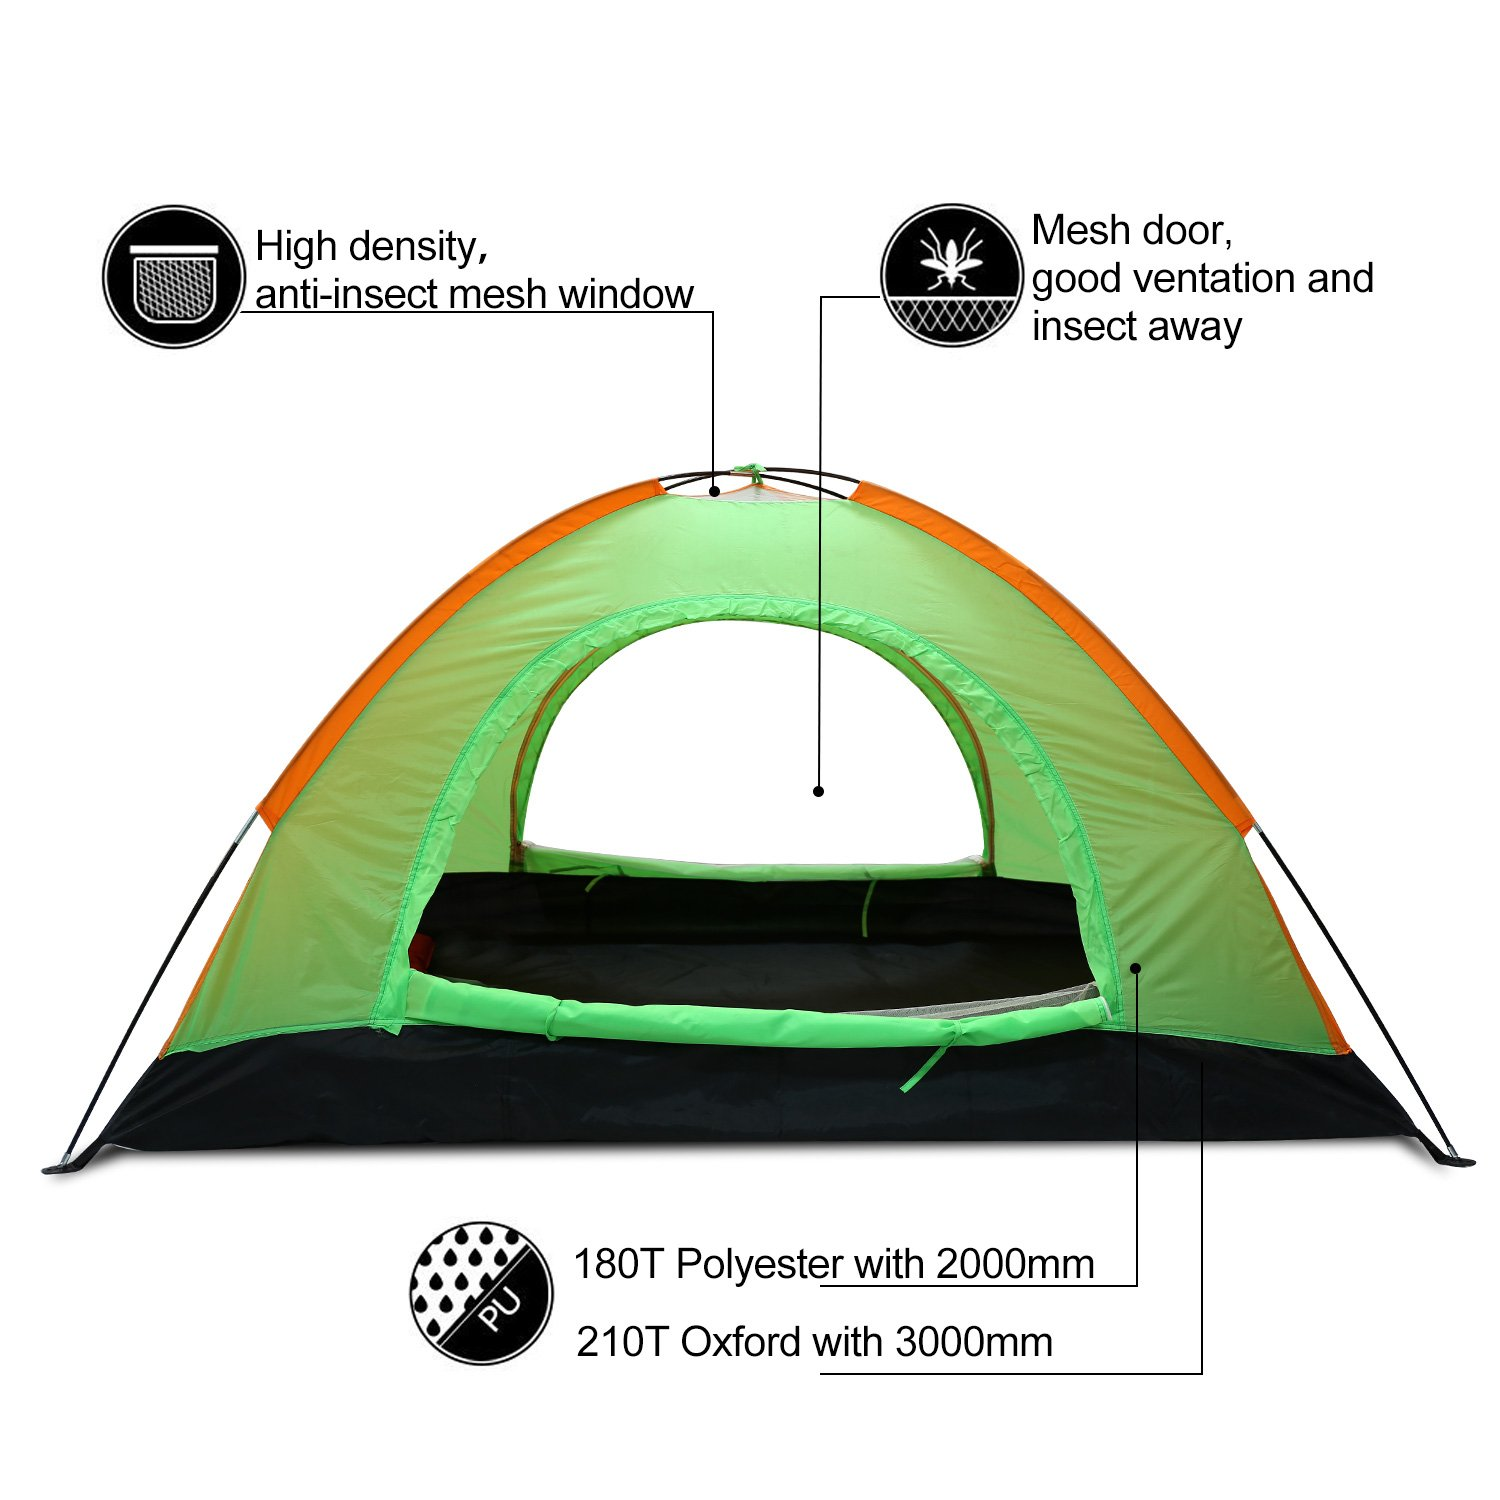 Argus Le Sale Camping Tent 2 Person 3 Season Hiking Tent, Lightweight Waterproof Backpacking Tent for Camping, Backpacking, Hiking, Outdoor Activities with Carry Bag